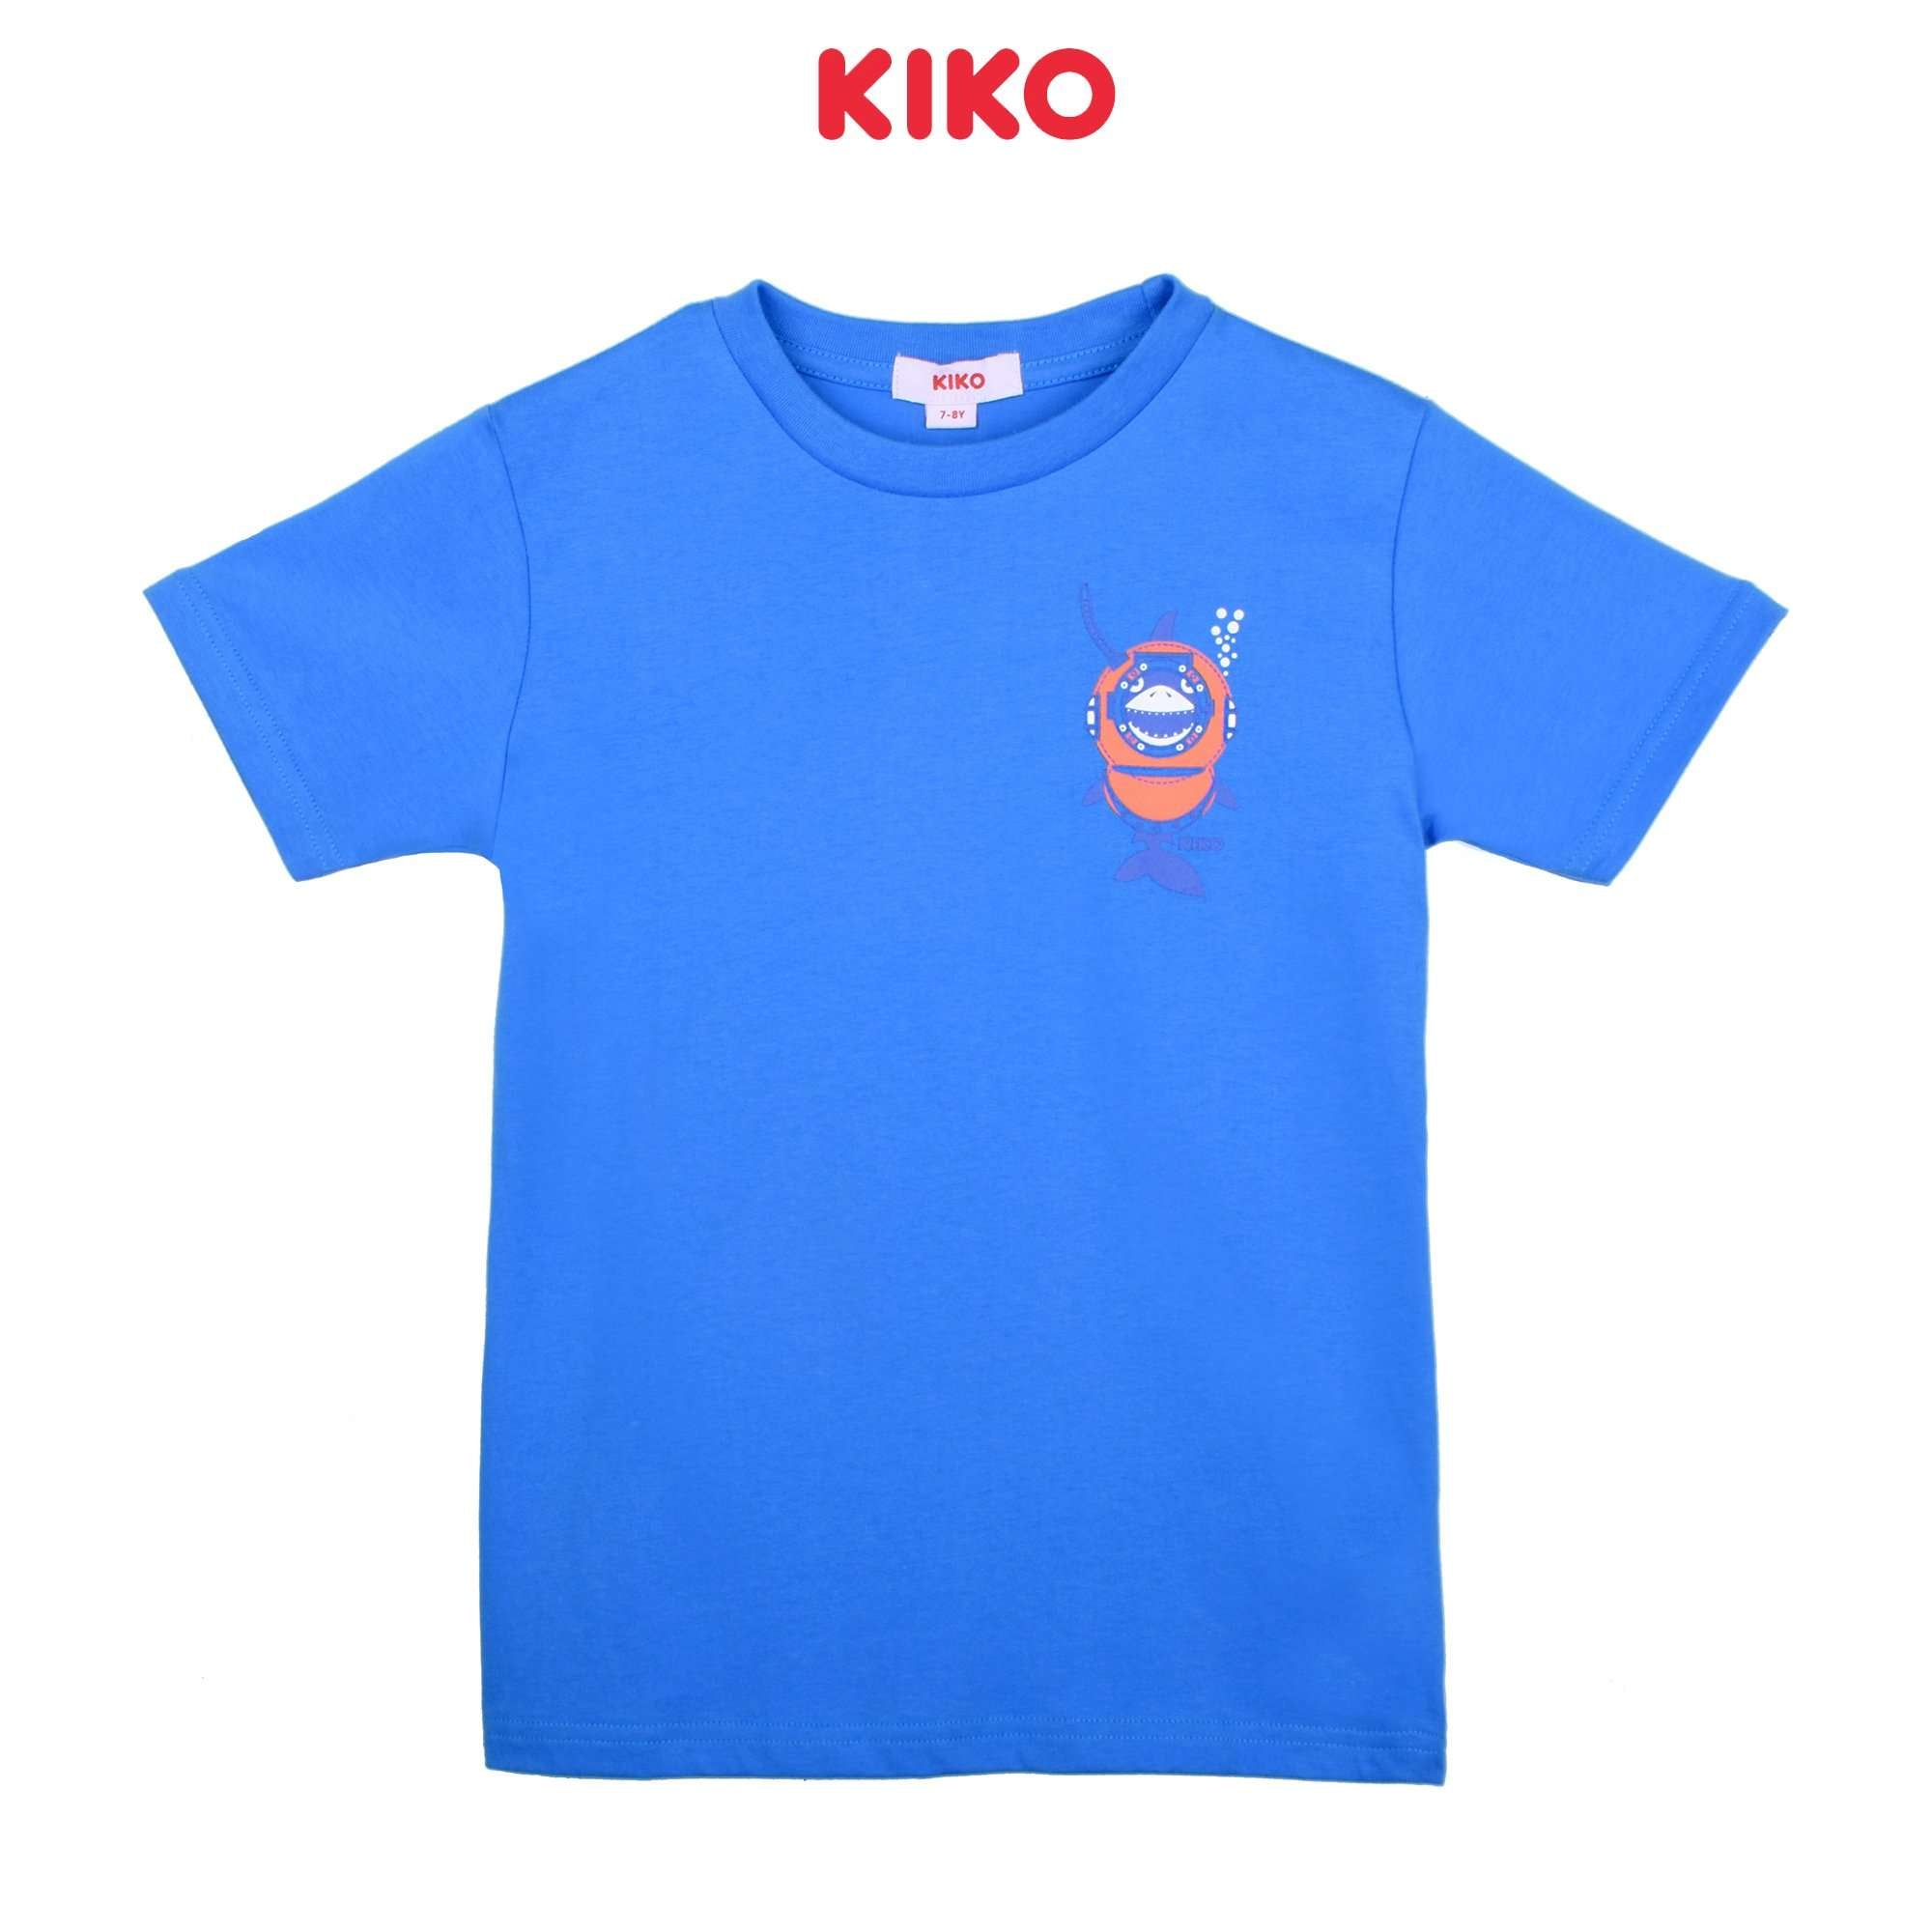 KIKO Boy Short Sleeve Tee - Blue K923103-1119-L5 : Buy KIKO online at CMG.MY